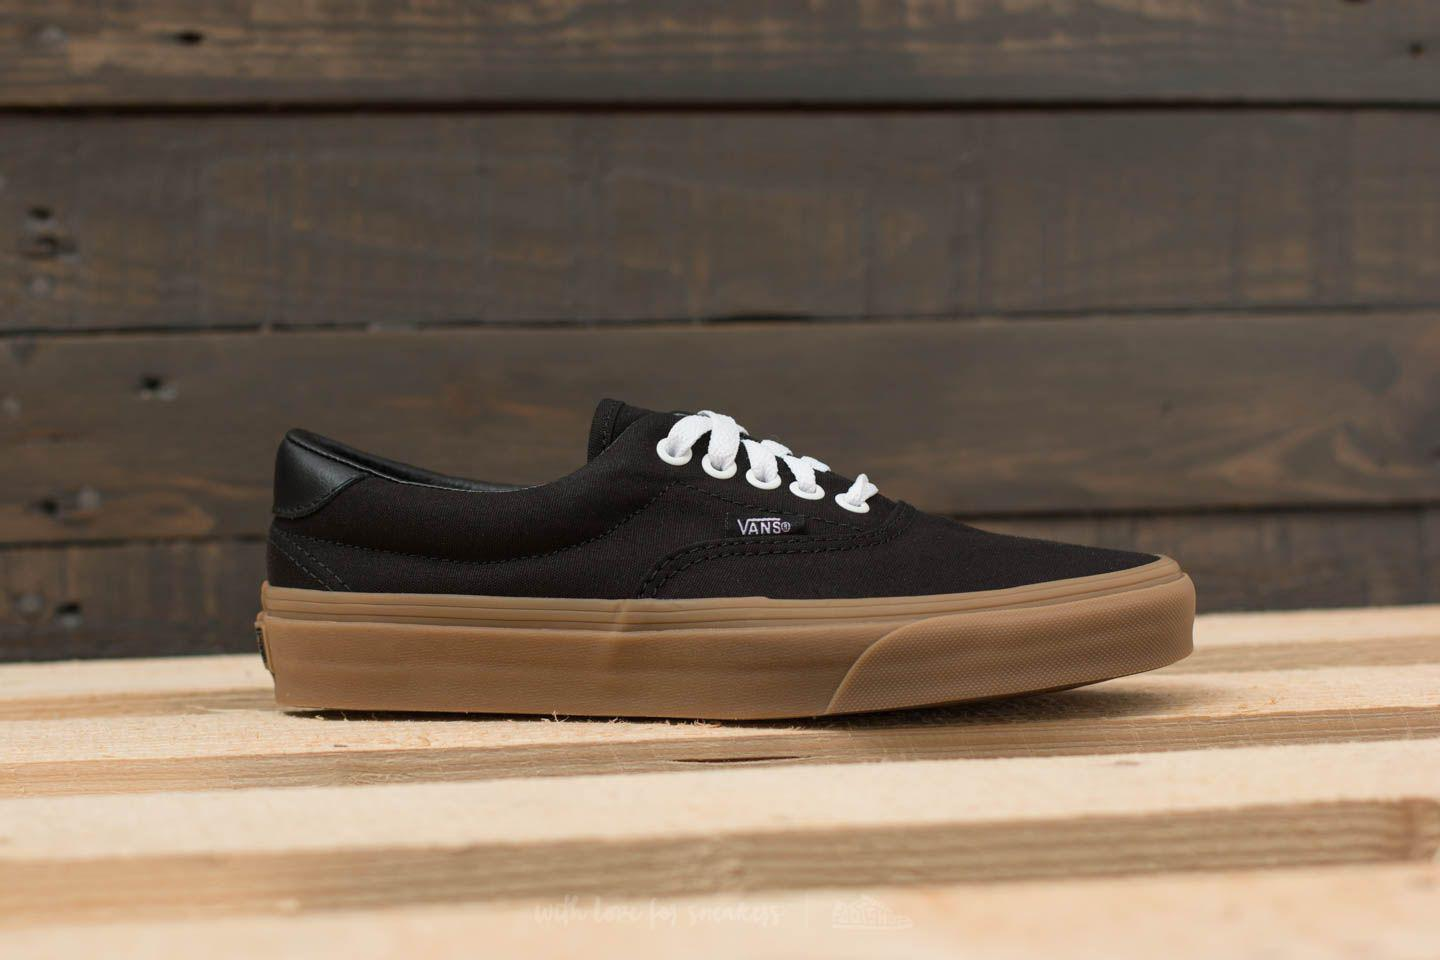 e791abf01c0d Lyst - Vans Era 59 (canvas Gum) Black  Light Gum in Black for Men